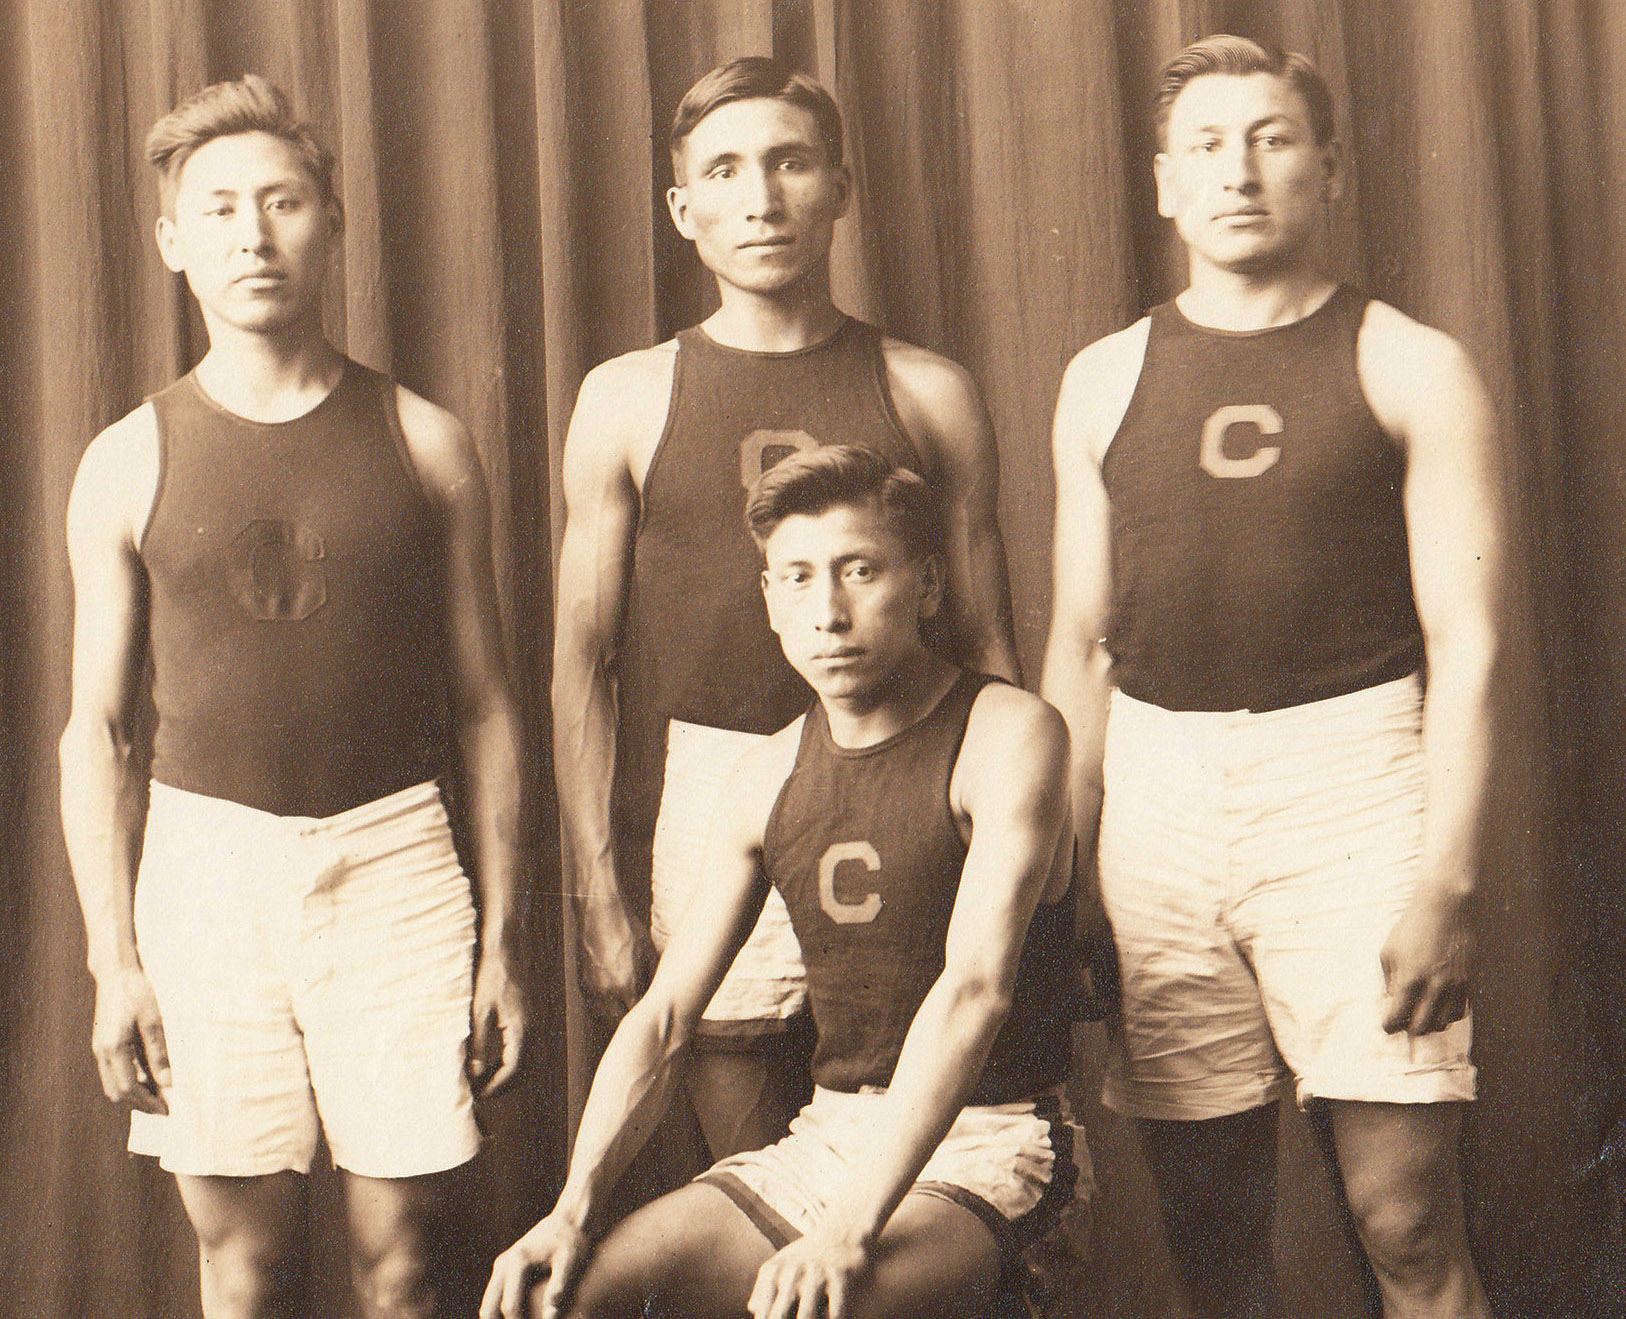 Edgar Moore and Unidentified Athletic Team, c.1908